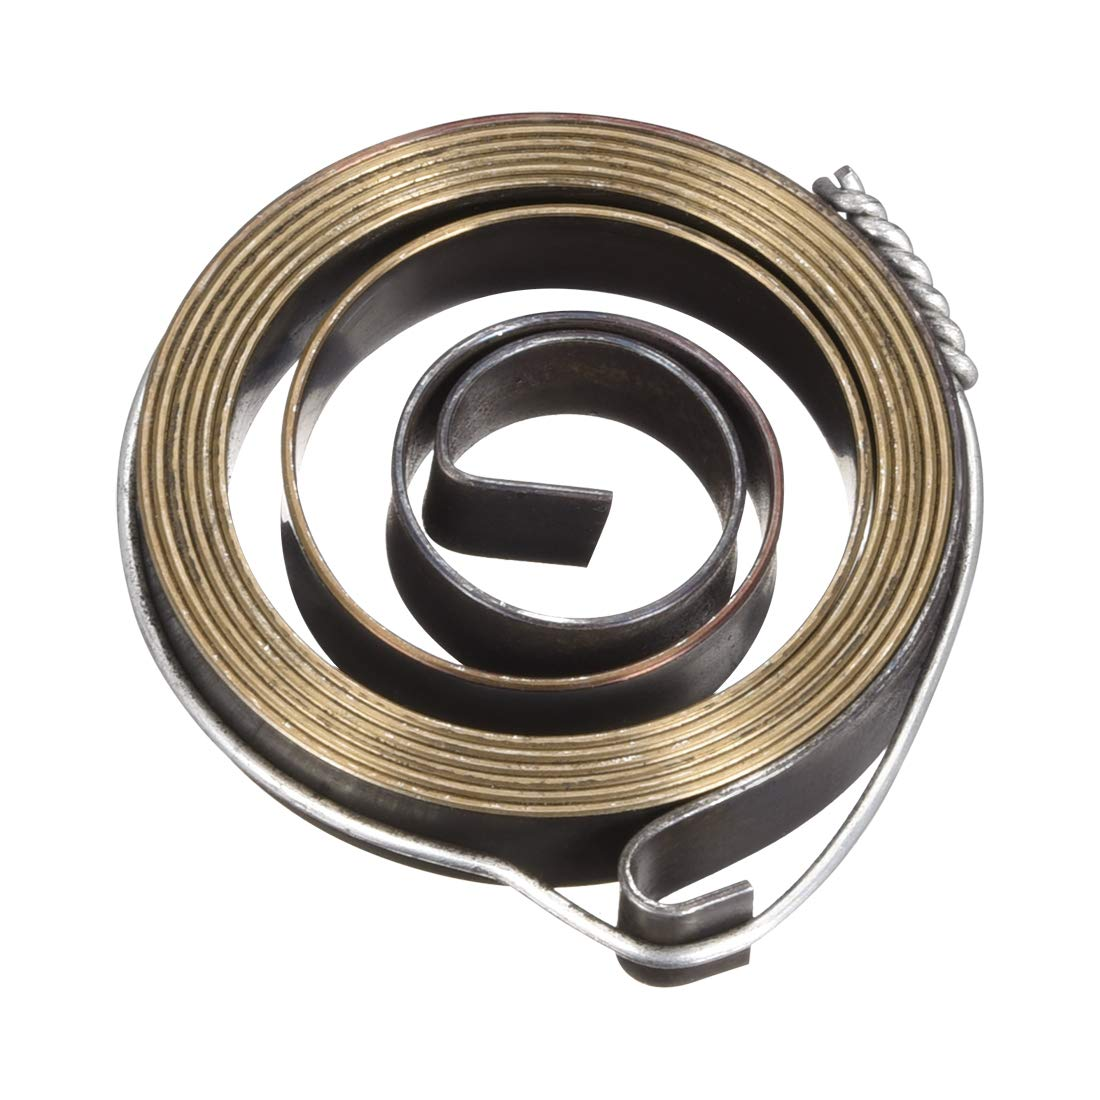 47 x 30 x 0.7mm 4.6Ft Long Quill Feed Return Coil Spring Assembly uxcell Drill Press Spring